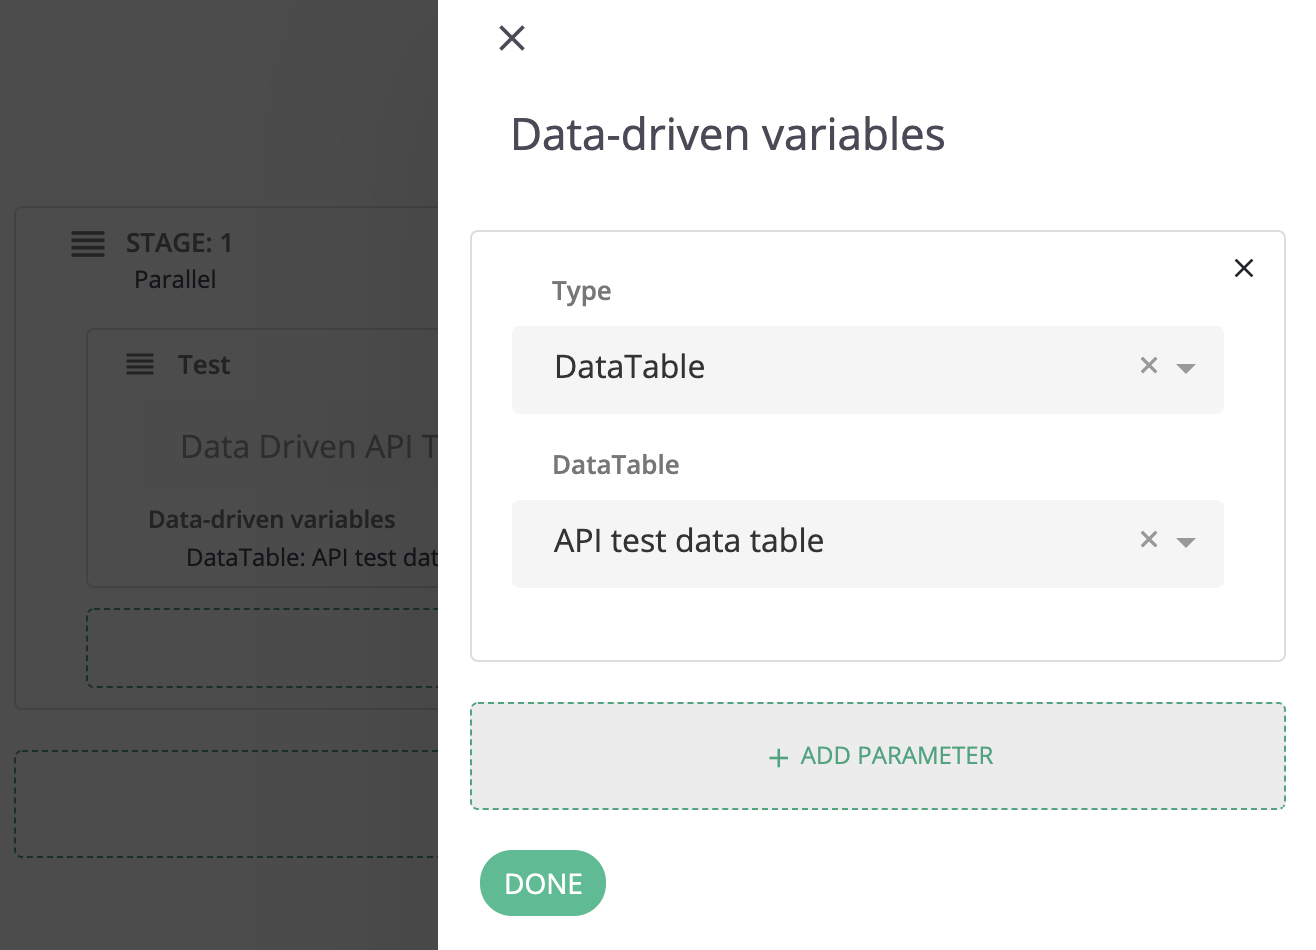 Setting one specific DataTable to use for the test